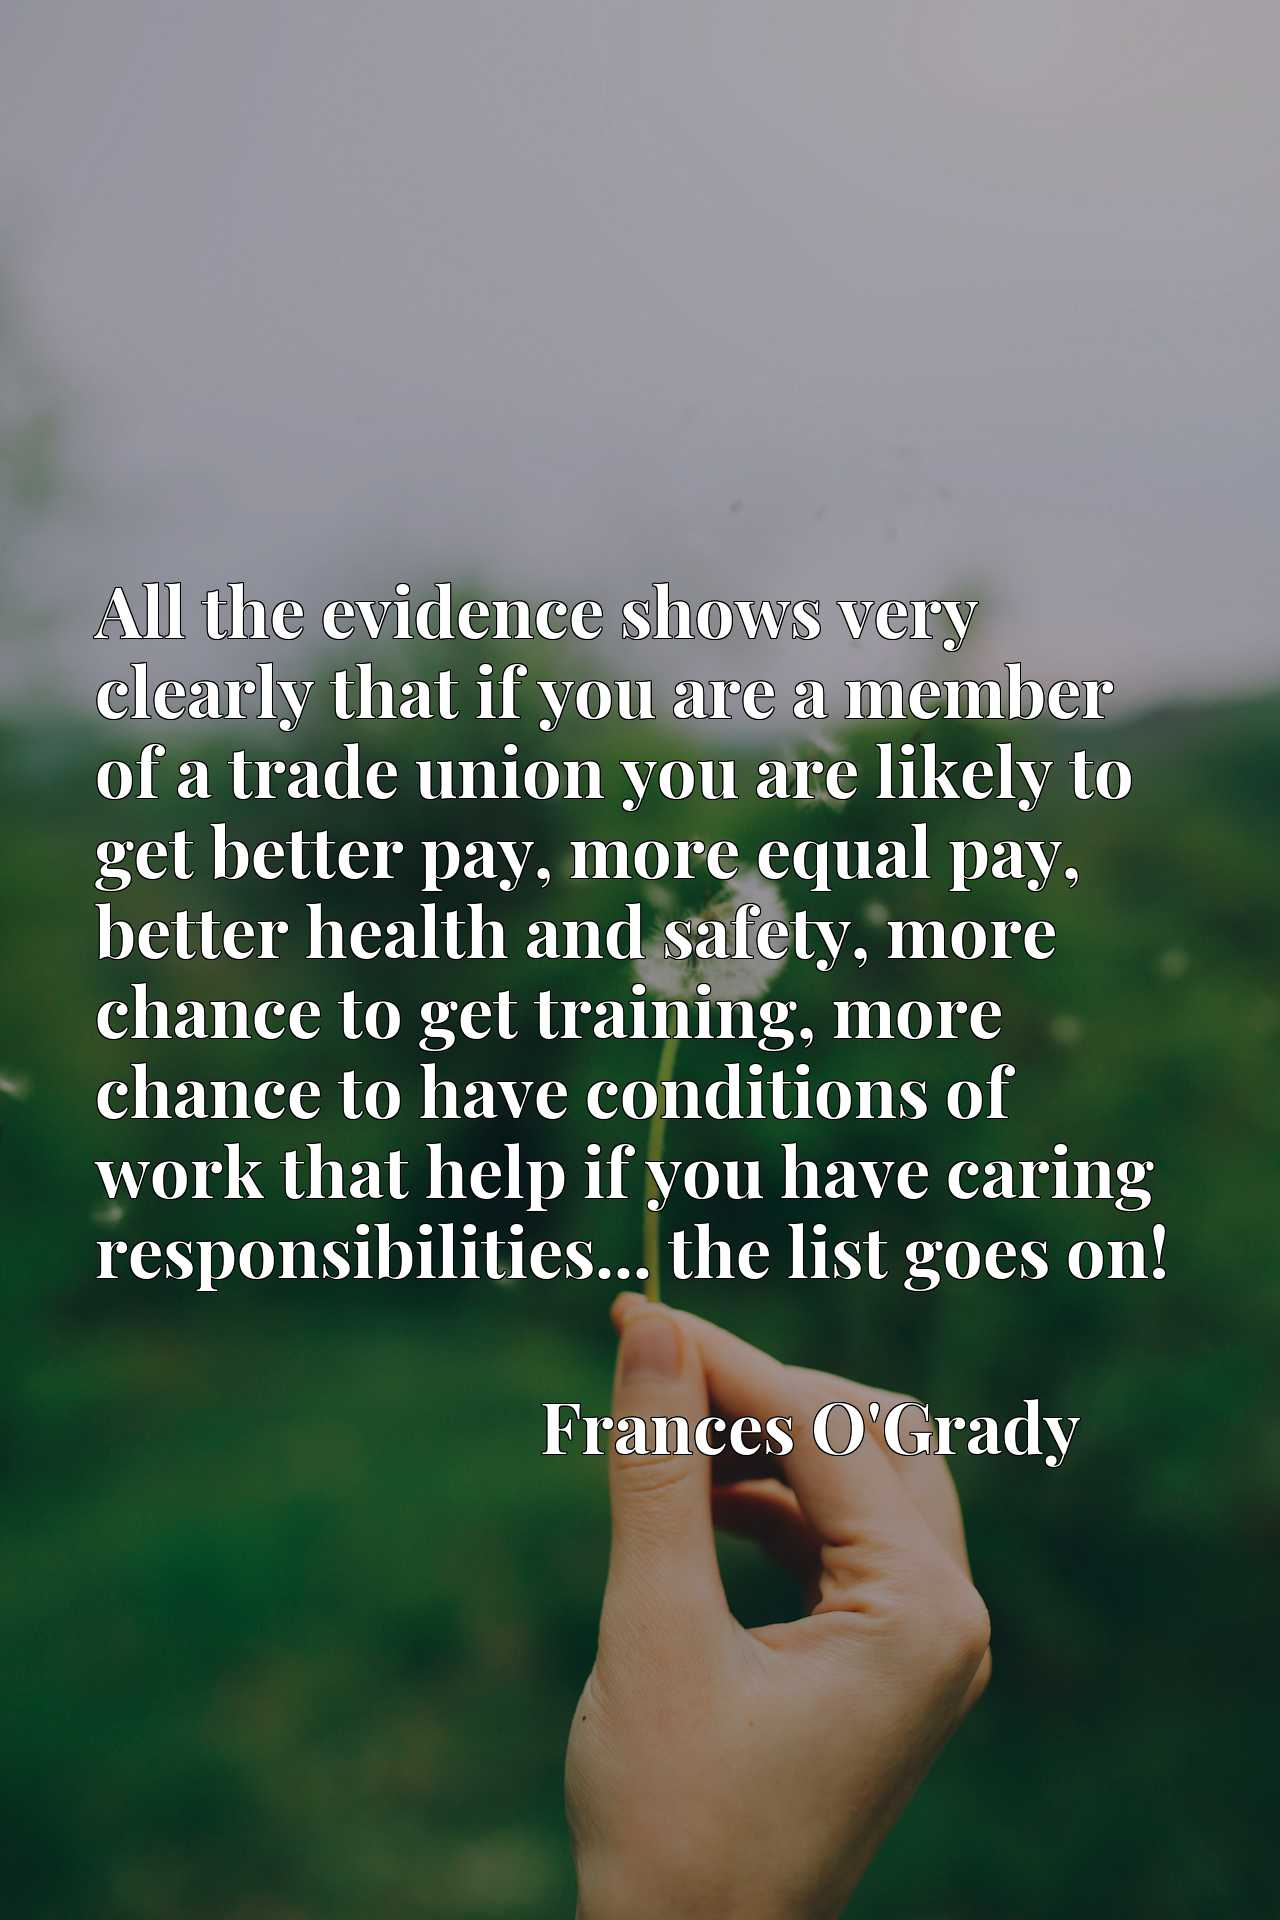 All the evidence shows very clearly that if you are a member of a trade union you are likely to get better pay, more equal pay, better health and safety, more chance to get training, more chance to have conditions of work that help if you have caring responsibilities... the list goes on!